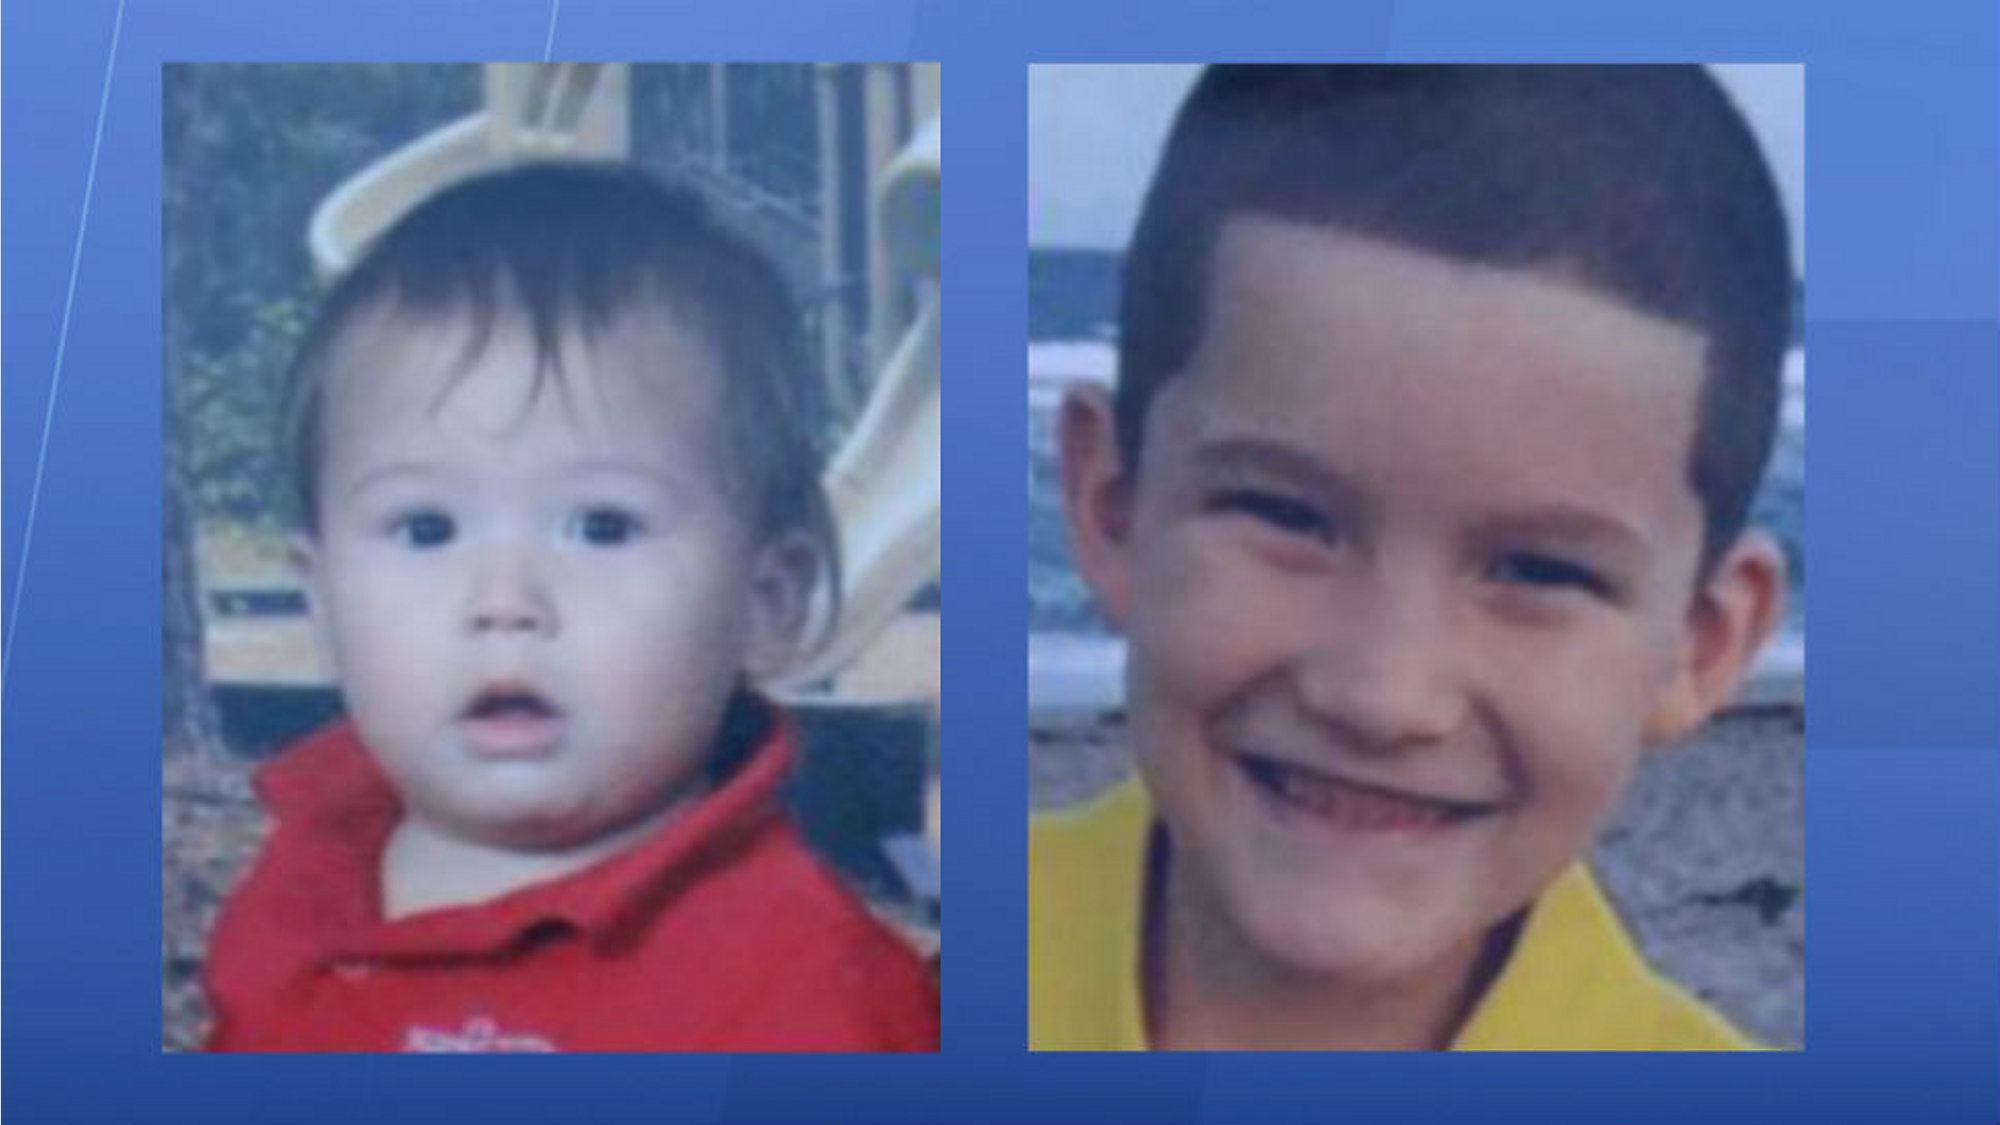 d7357aff6 A missing child alert has been canceled for 1-year-old Alan Phillips and